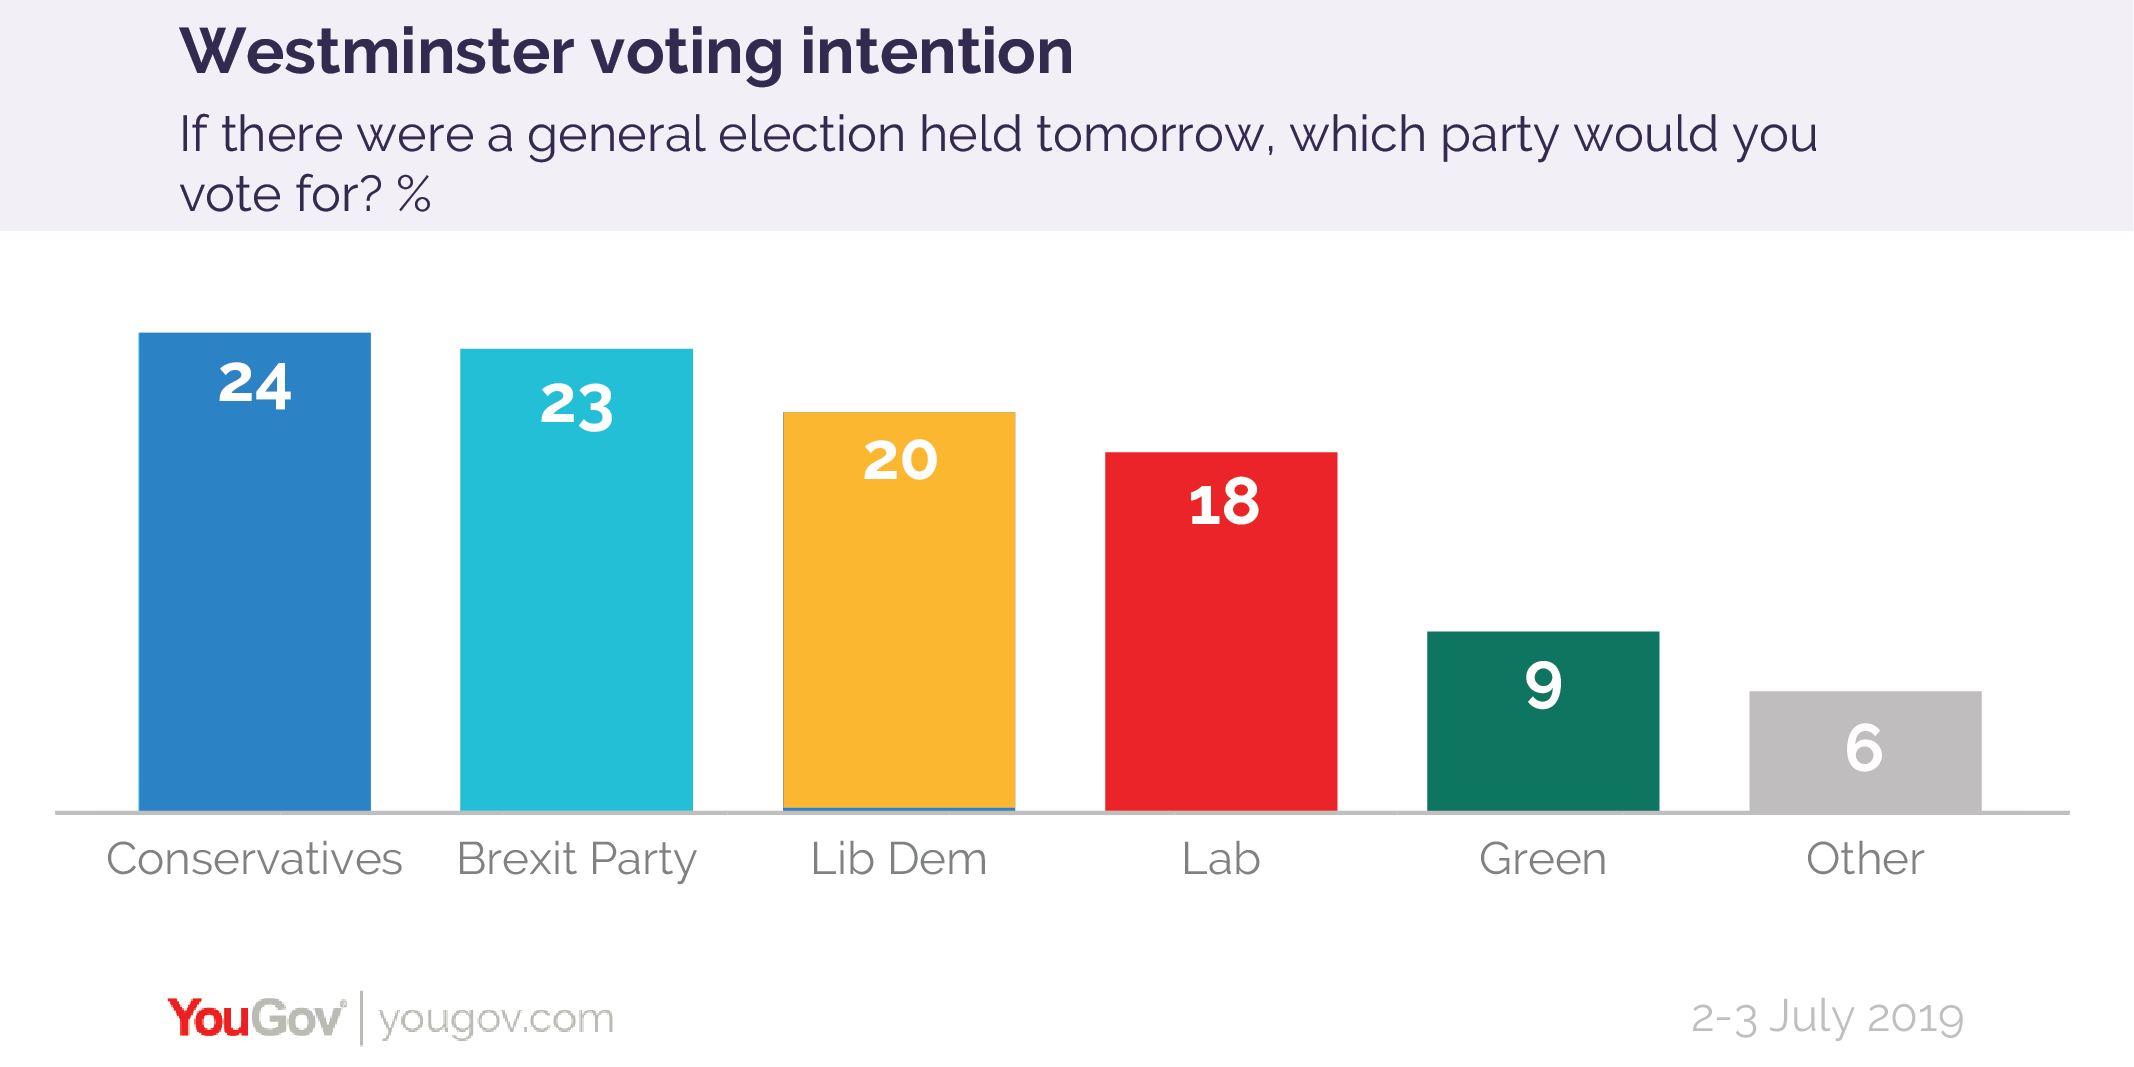 Voting Intention - Labour falls into 4th place   YouGov